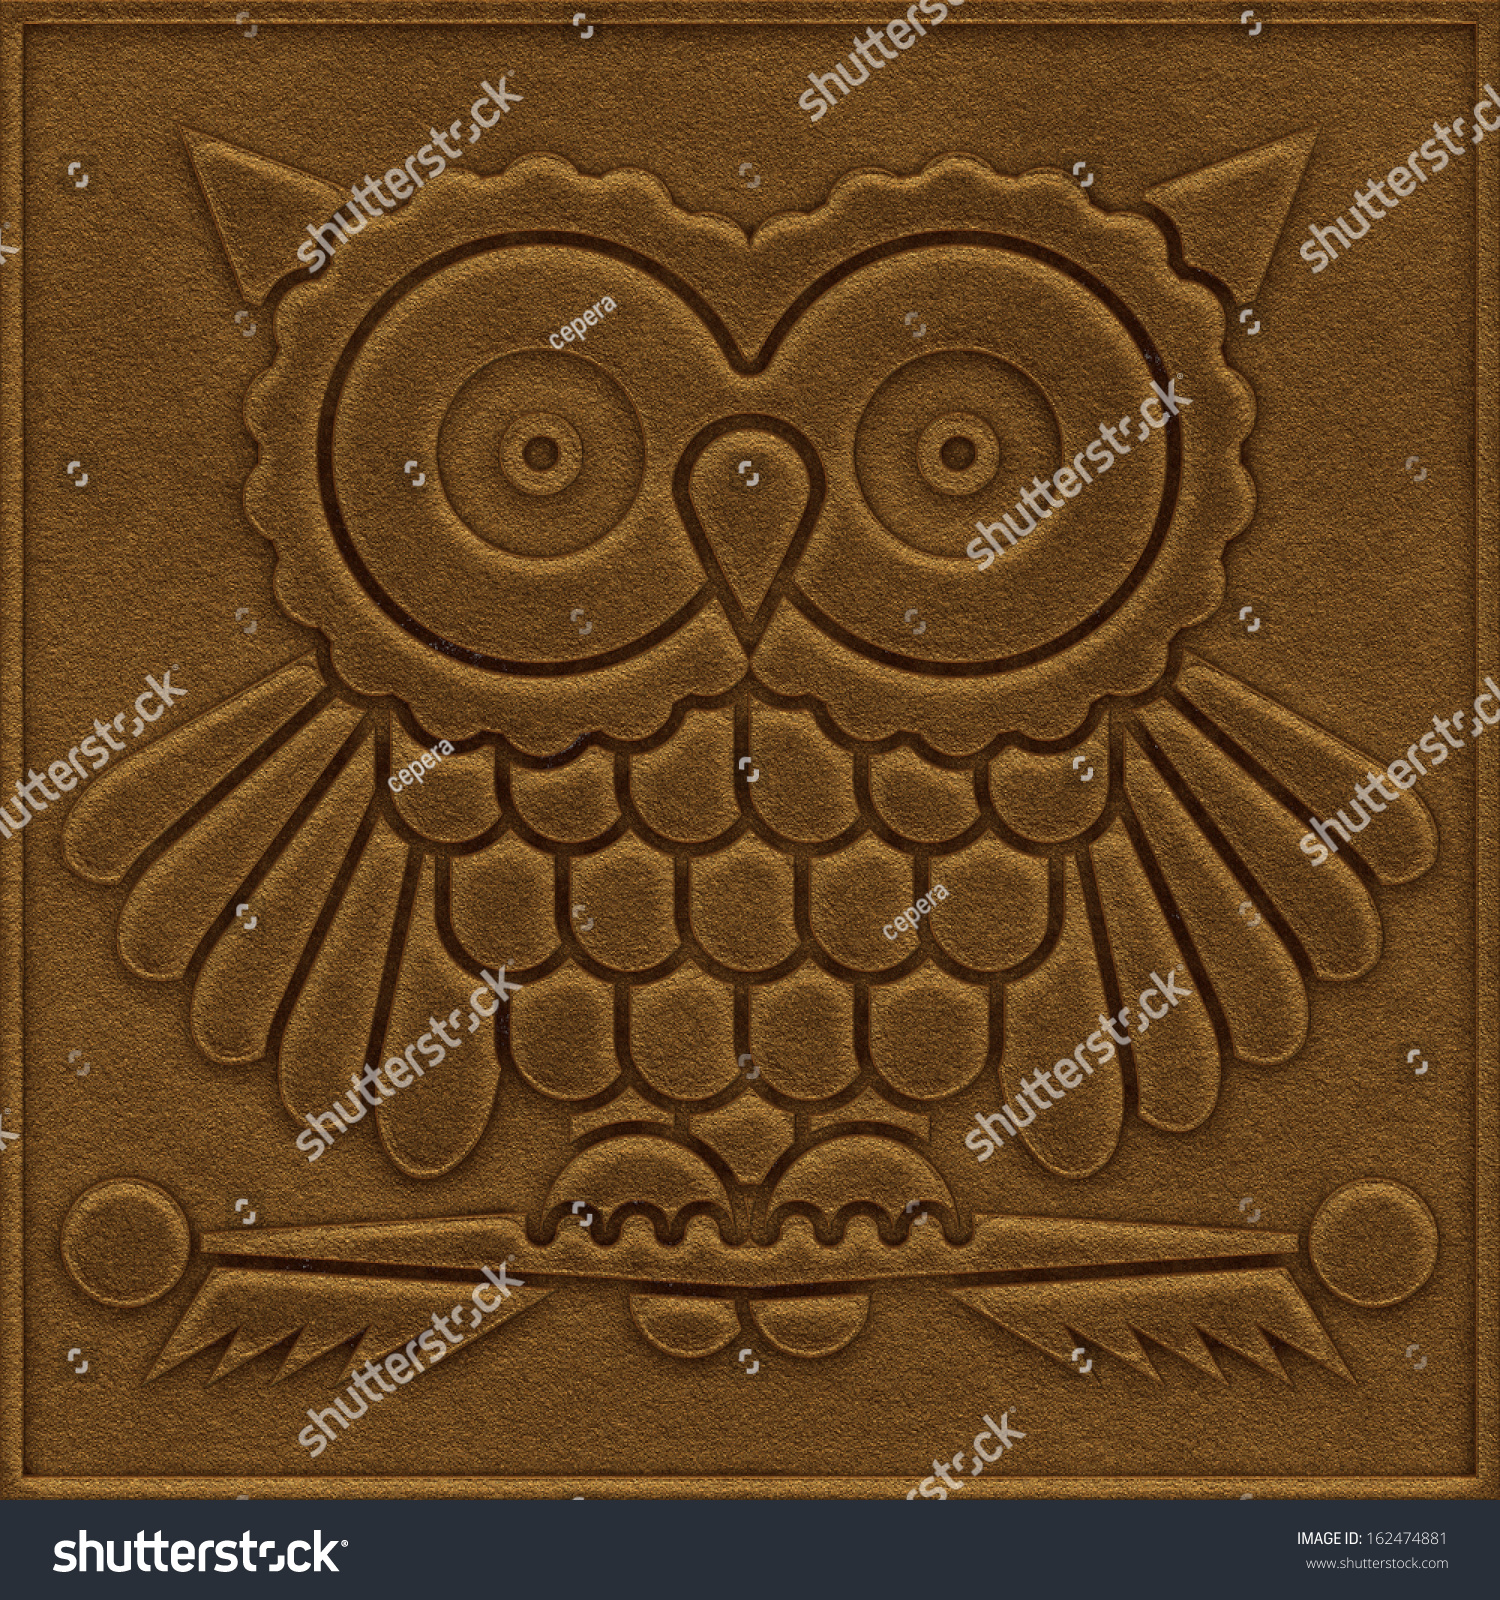 Hand crafted owl on driftwood wood carving by donna maries art